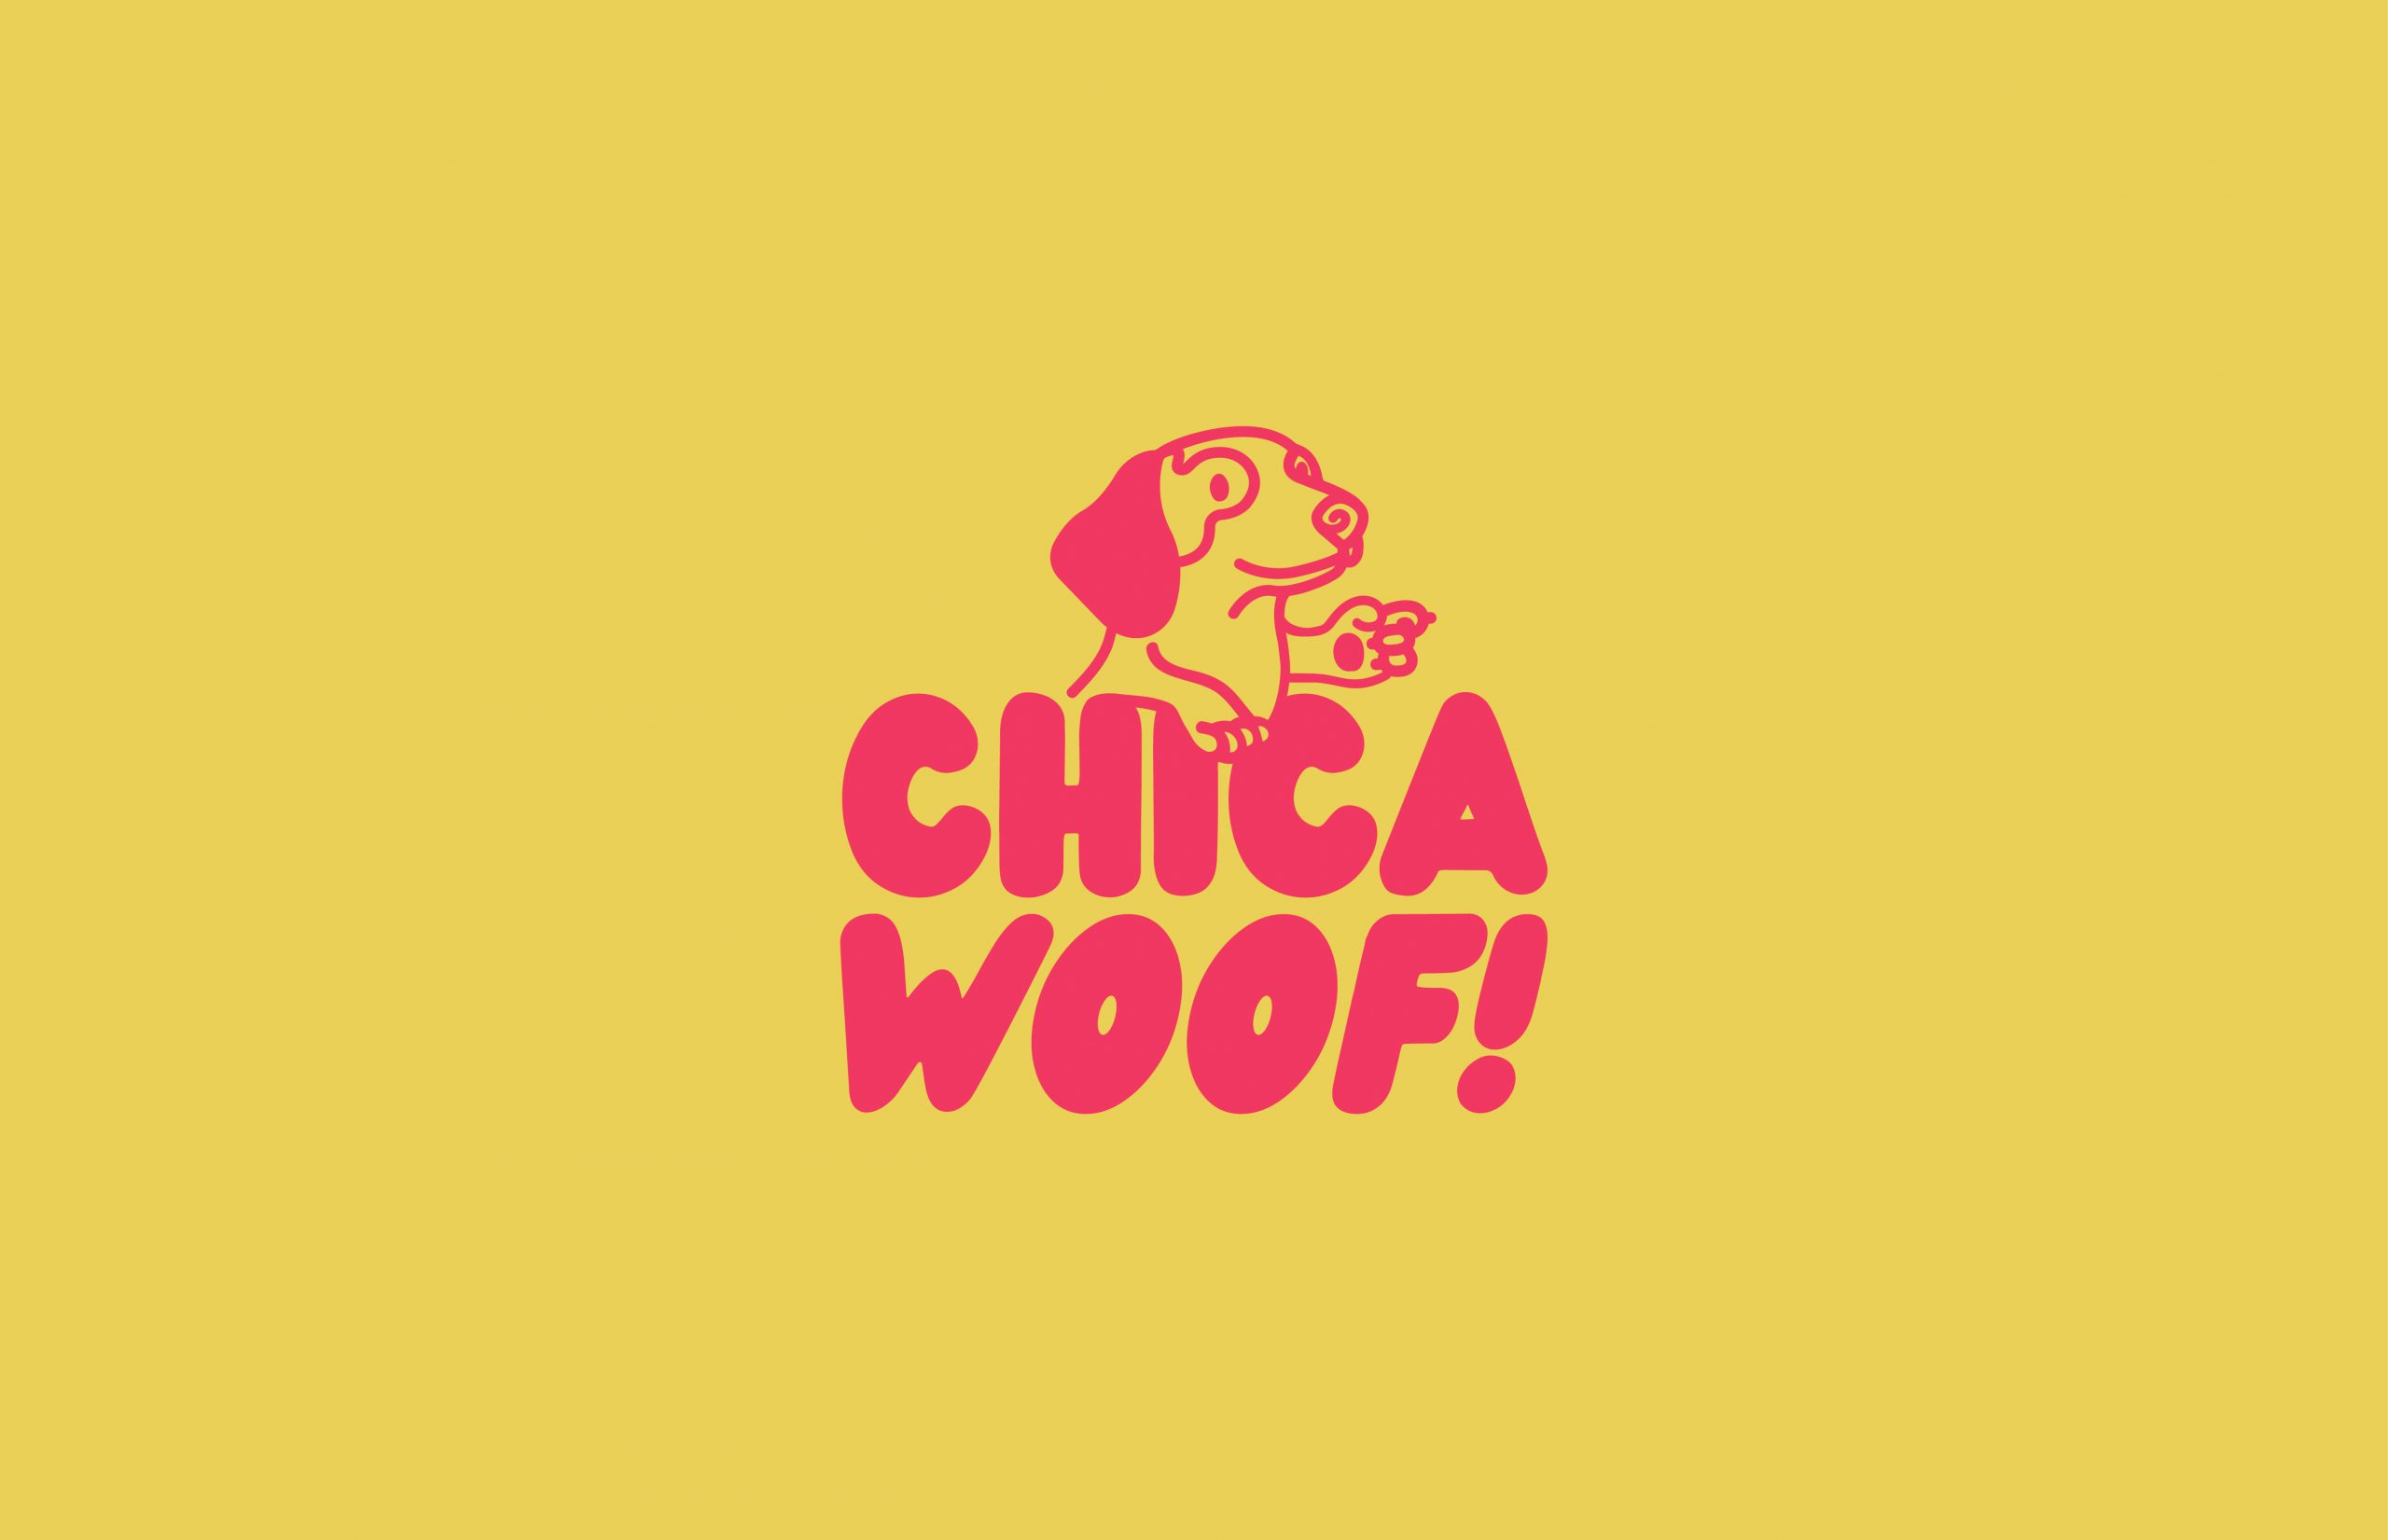 pink Chica Woof logo on yellow background